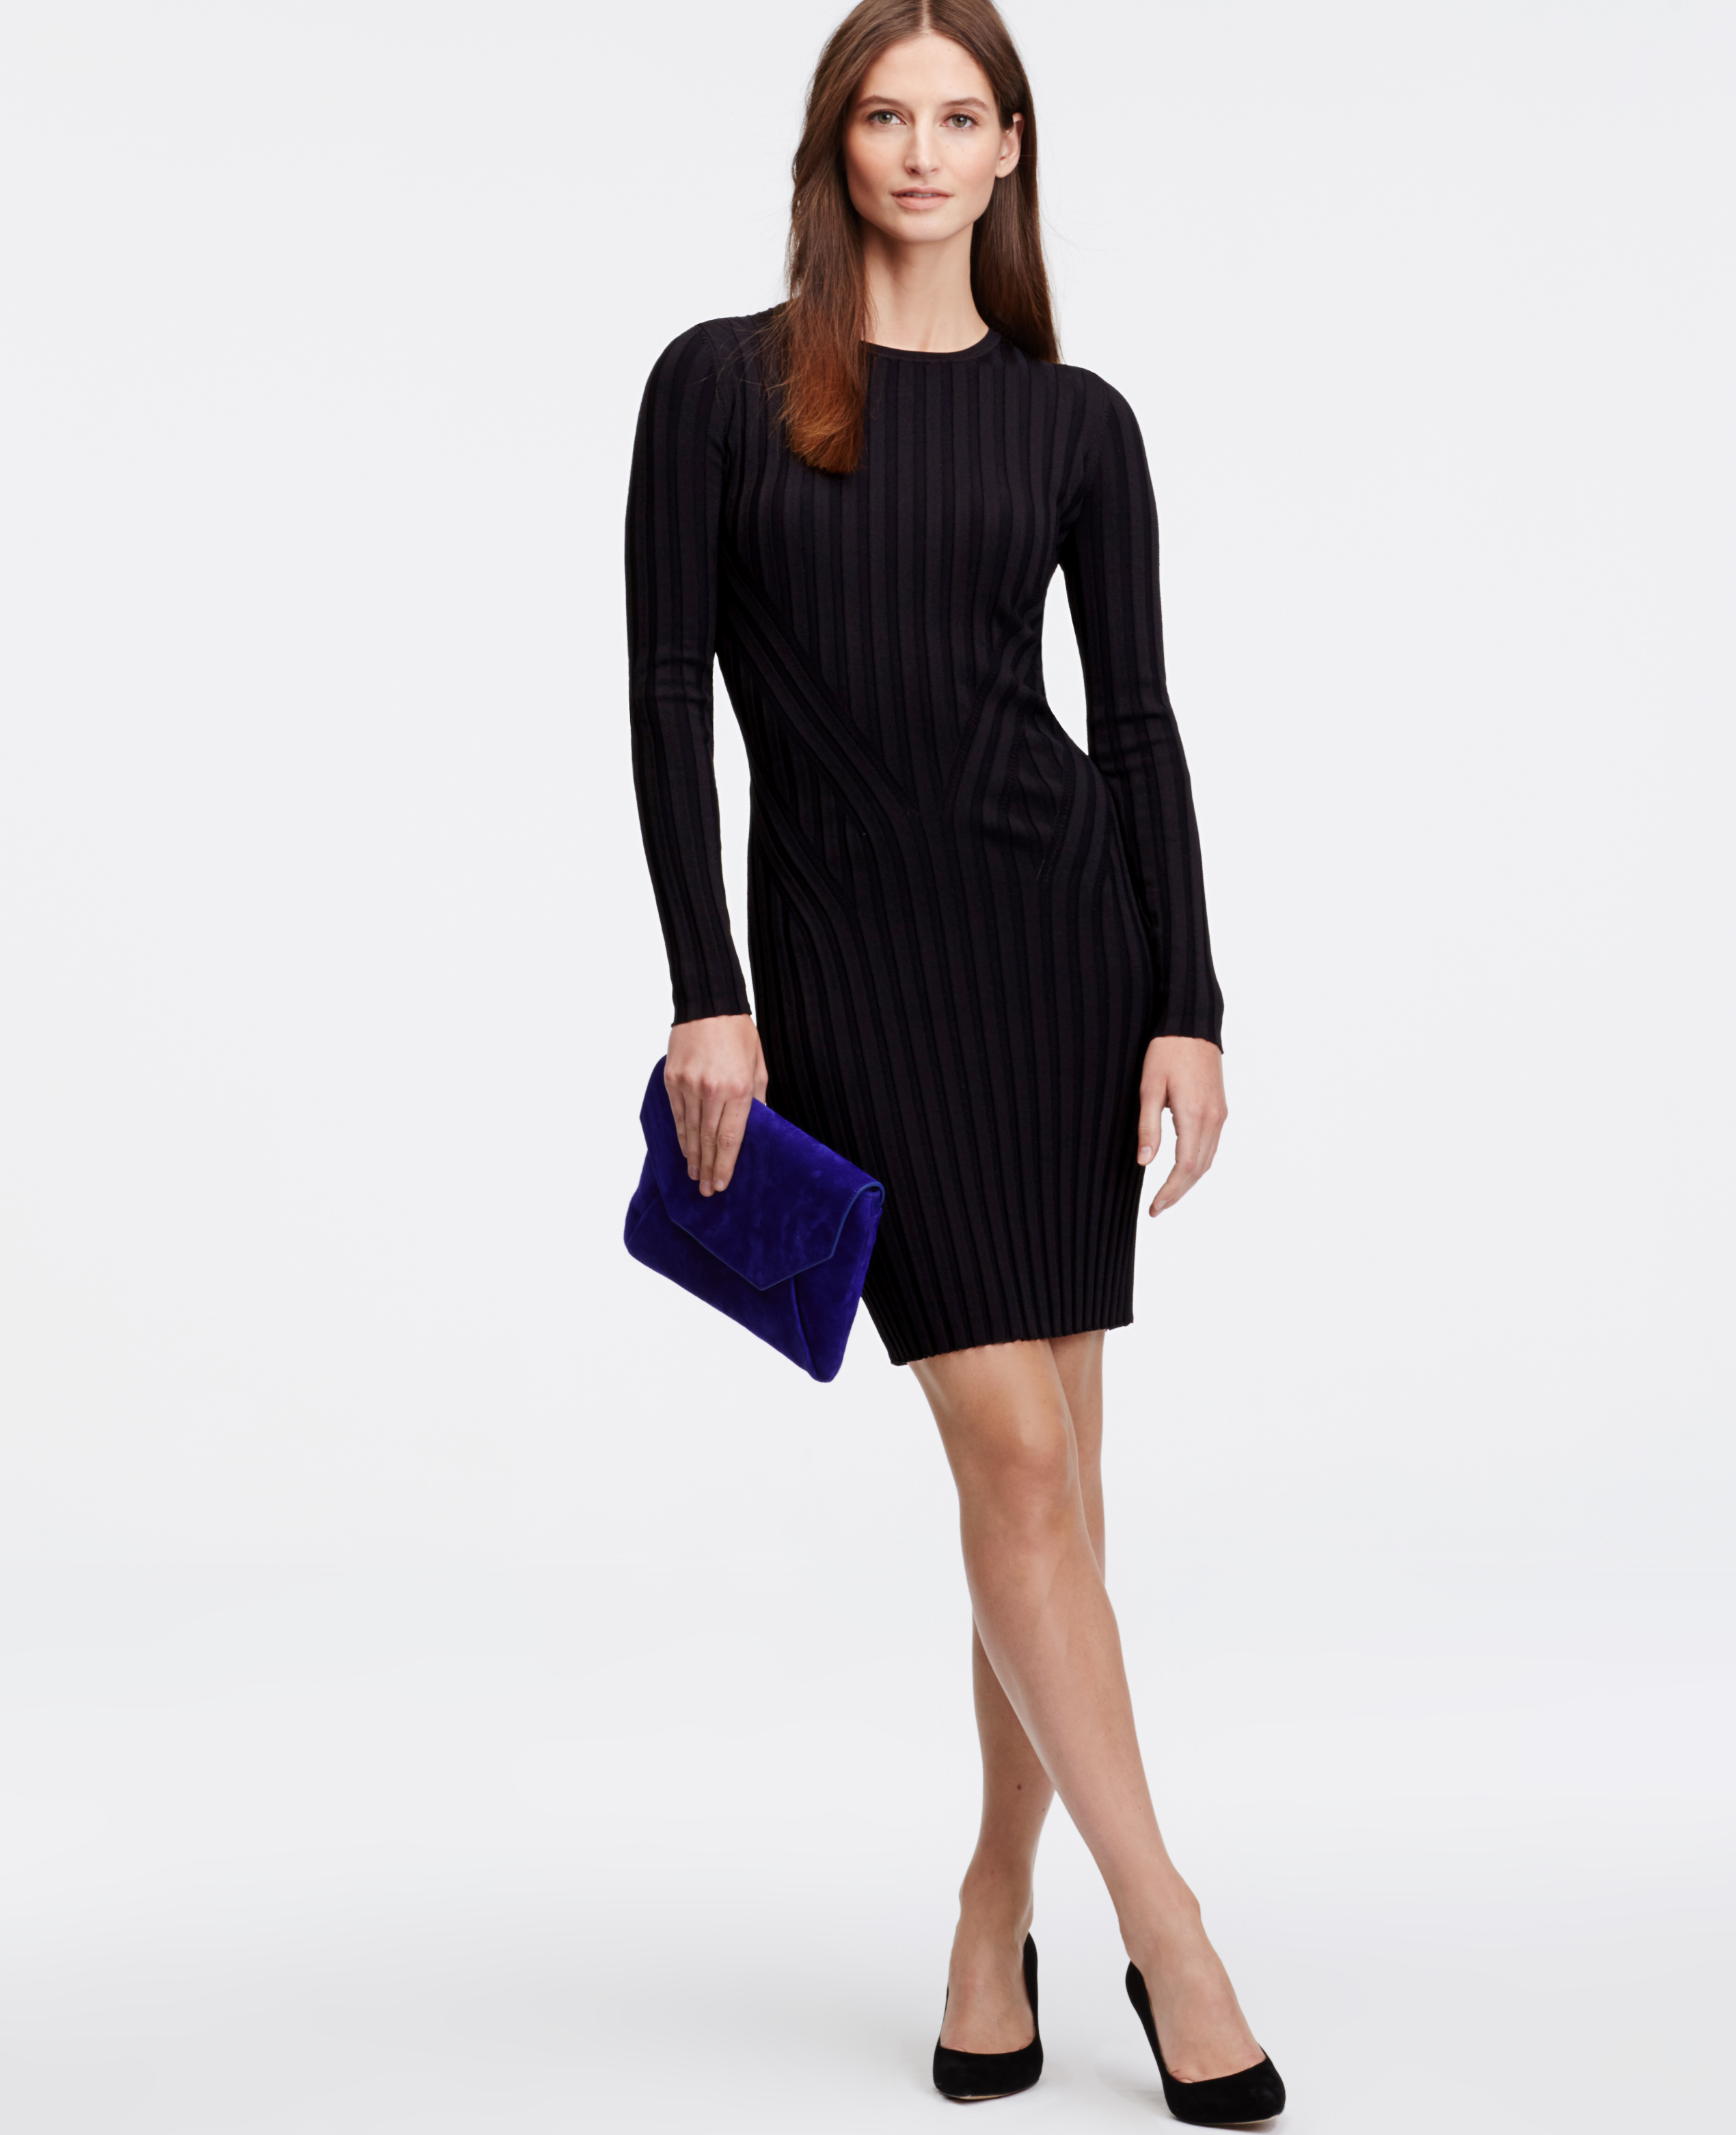 395fa7d4573 Ann Taylor Ribbed Sweater Dress in Black - Lyst